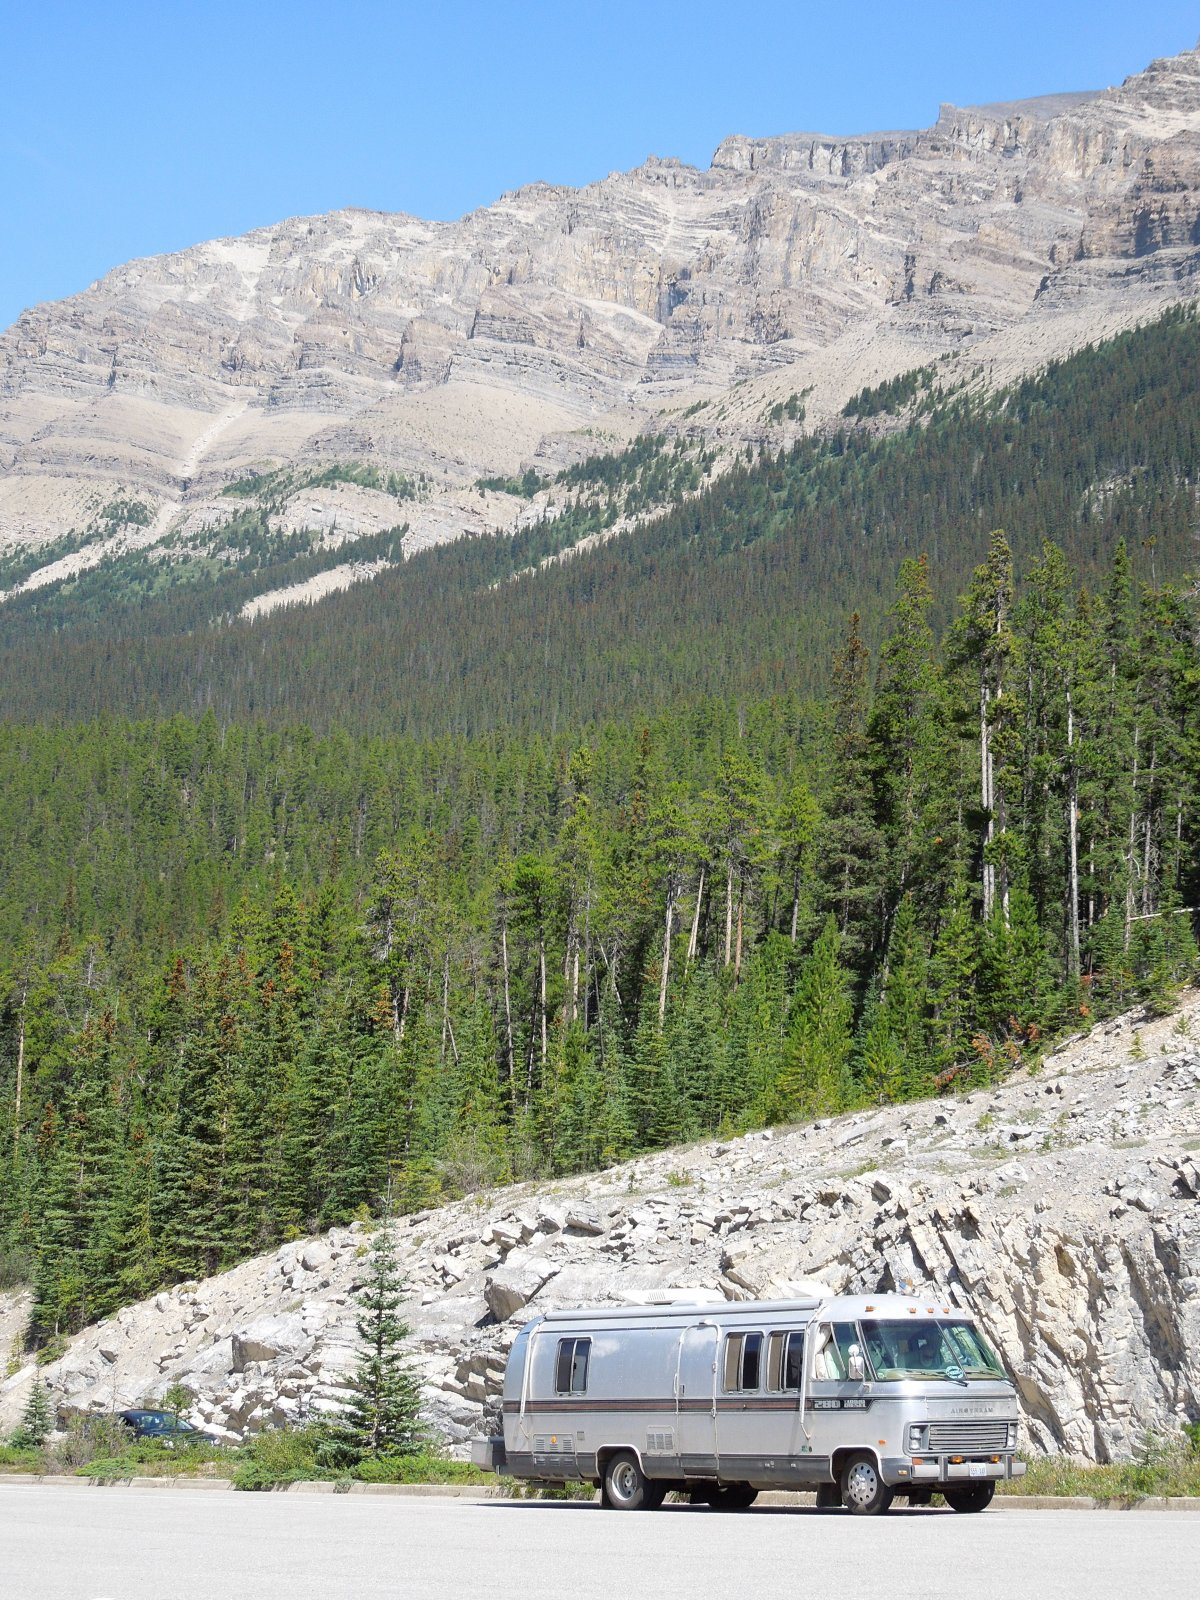 Click image for larger version  Name:Dawson Creek to Icefield Parkway to Cochrane 234.jpg Views:49 Size:632.1 KB ID:222449